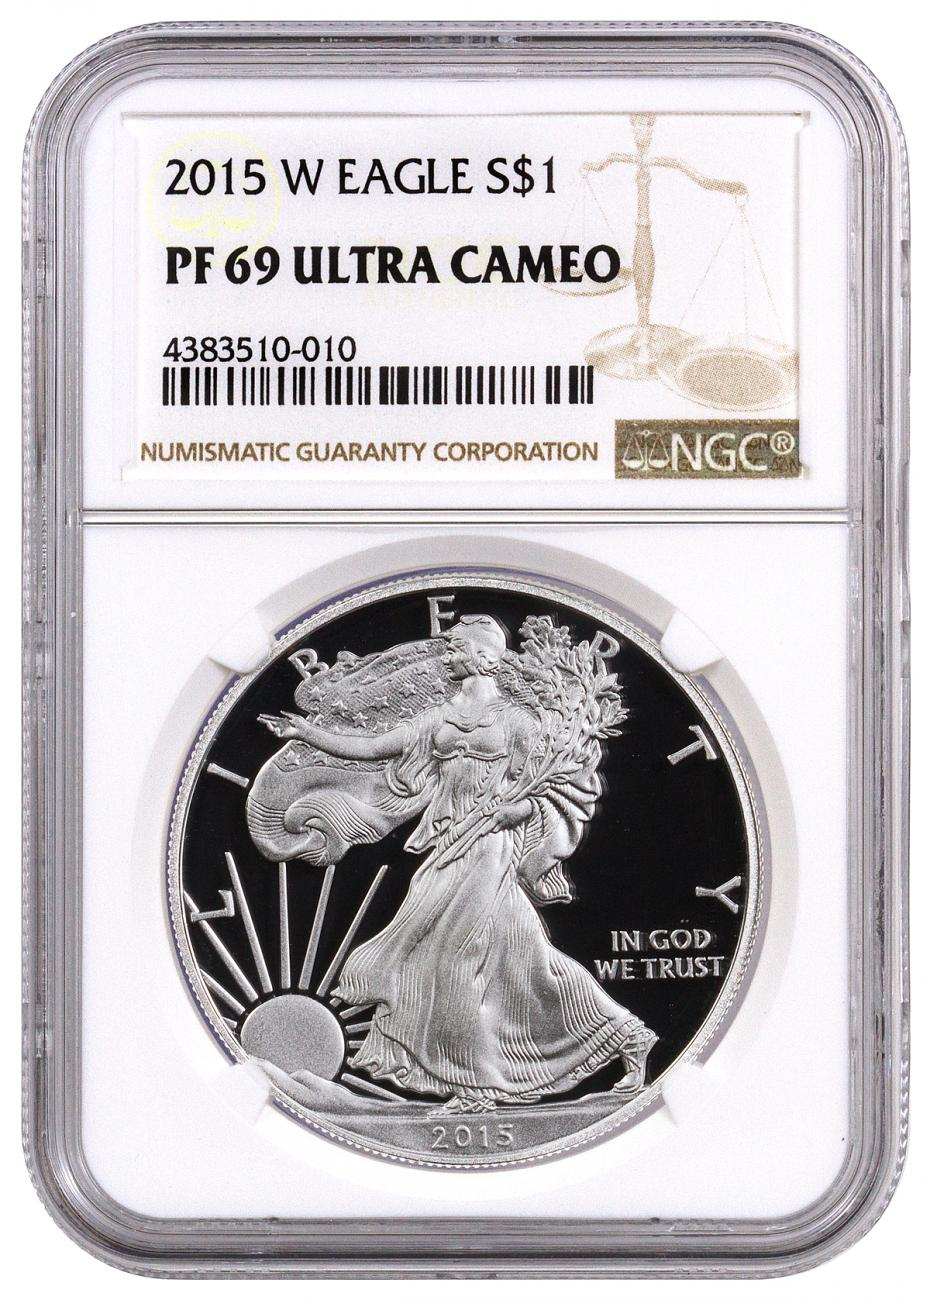 2015 W American Silver Eagle Proof Ngc Pf69 Uc